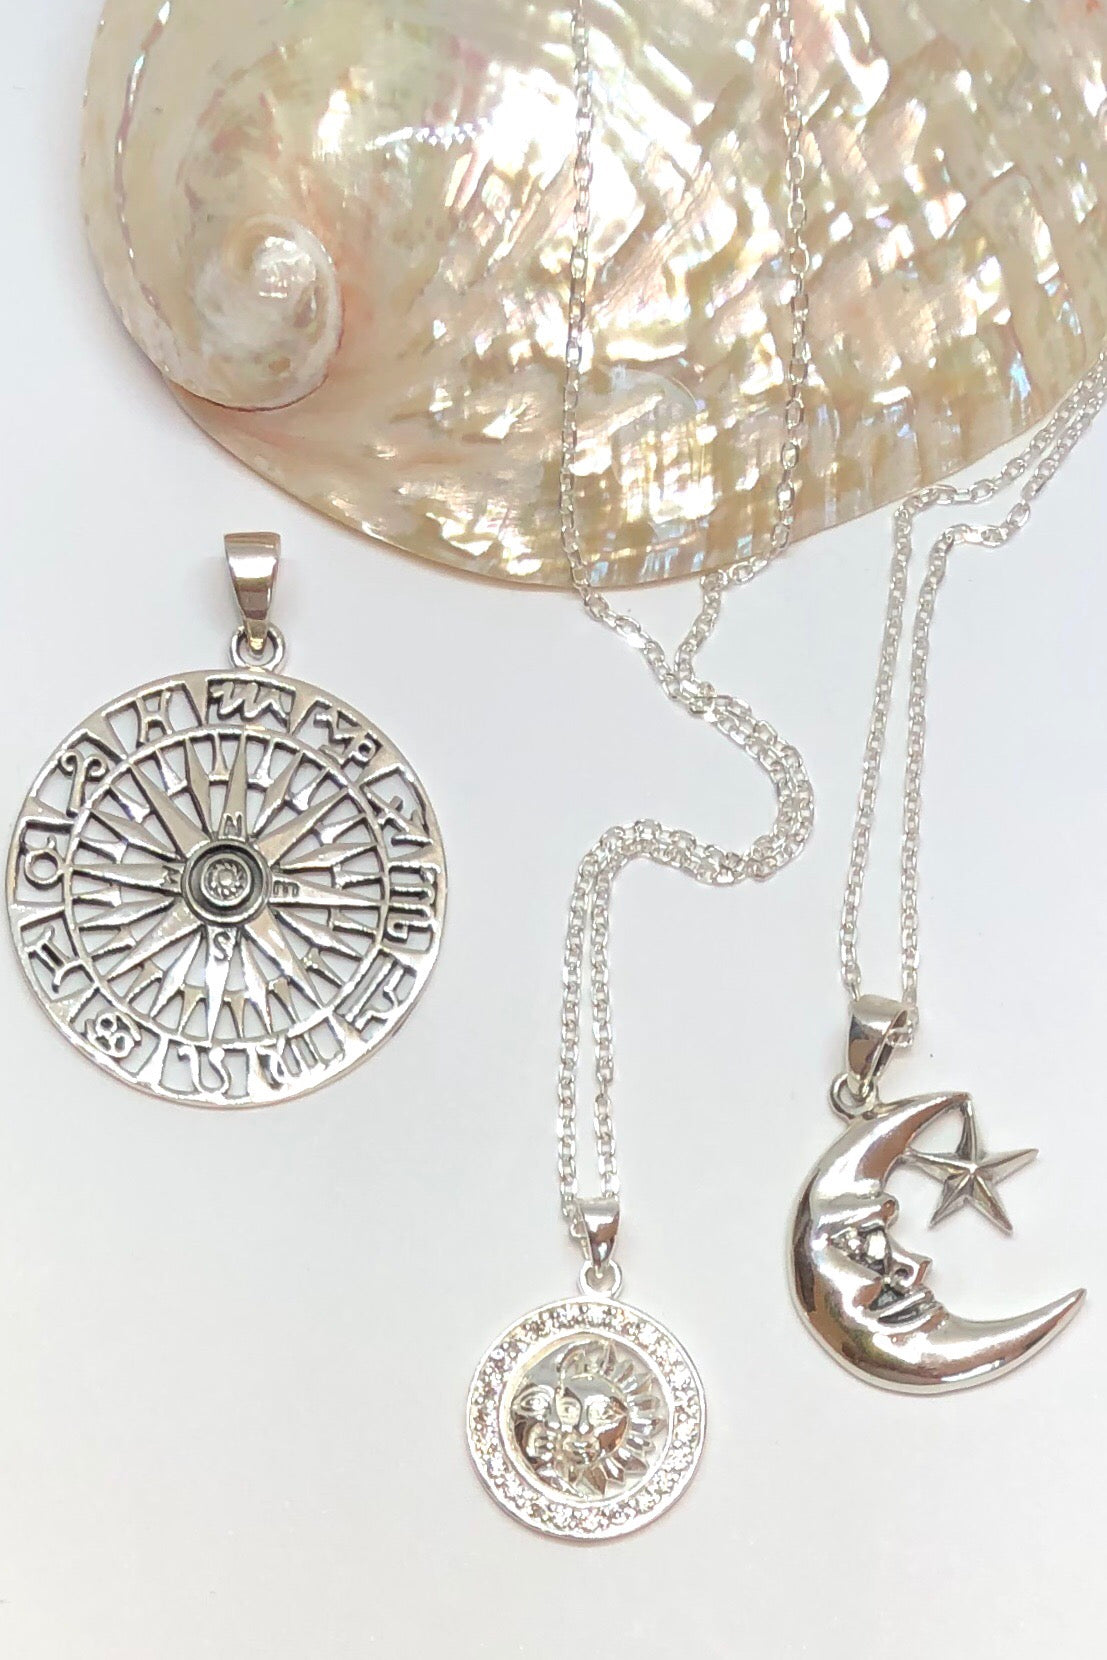 The Oracle Pendant Moon an Star l is a boho luxe design 925 solid silver pendant featuring 2. 5cm in length, Silver faced crescent crescent moon and a star and coming on a 925 silver chain.